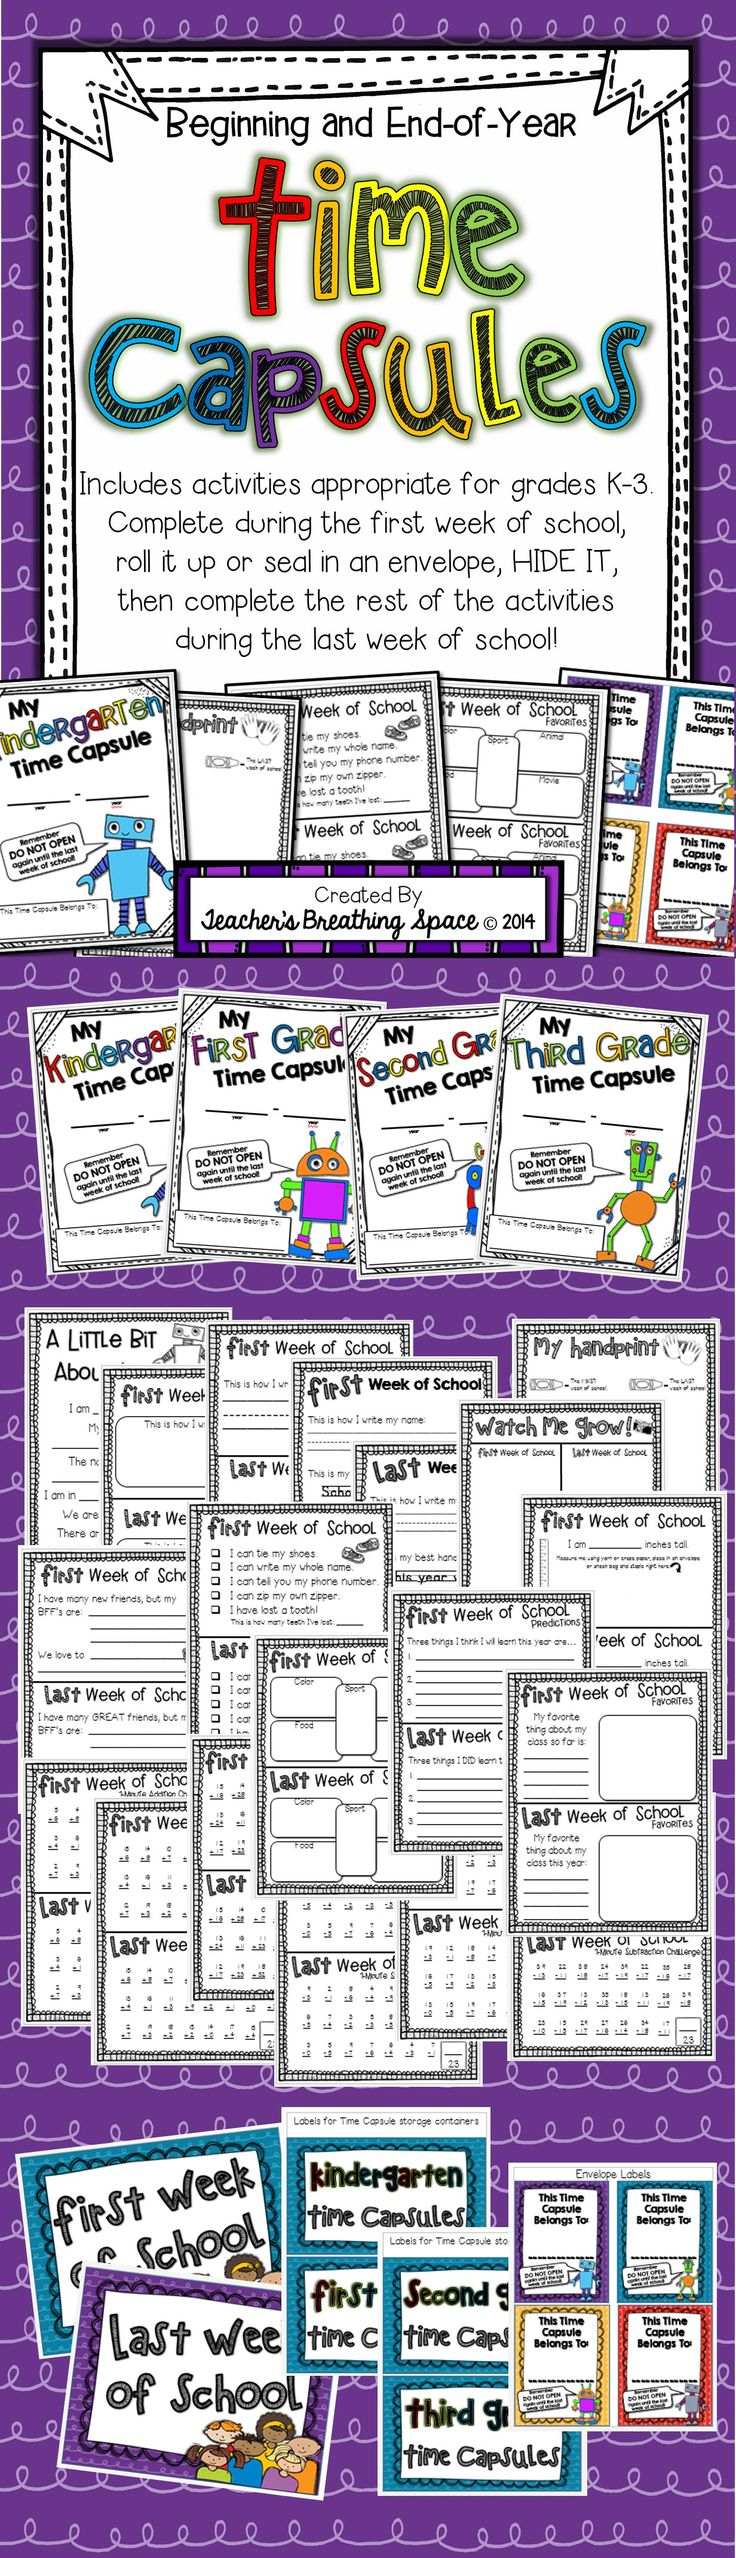 worksheet Time Capsule Worksheet best 25 time capsule kids ideas on pinterest school all about me activities and student crafts